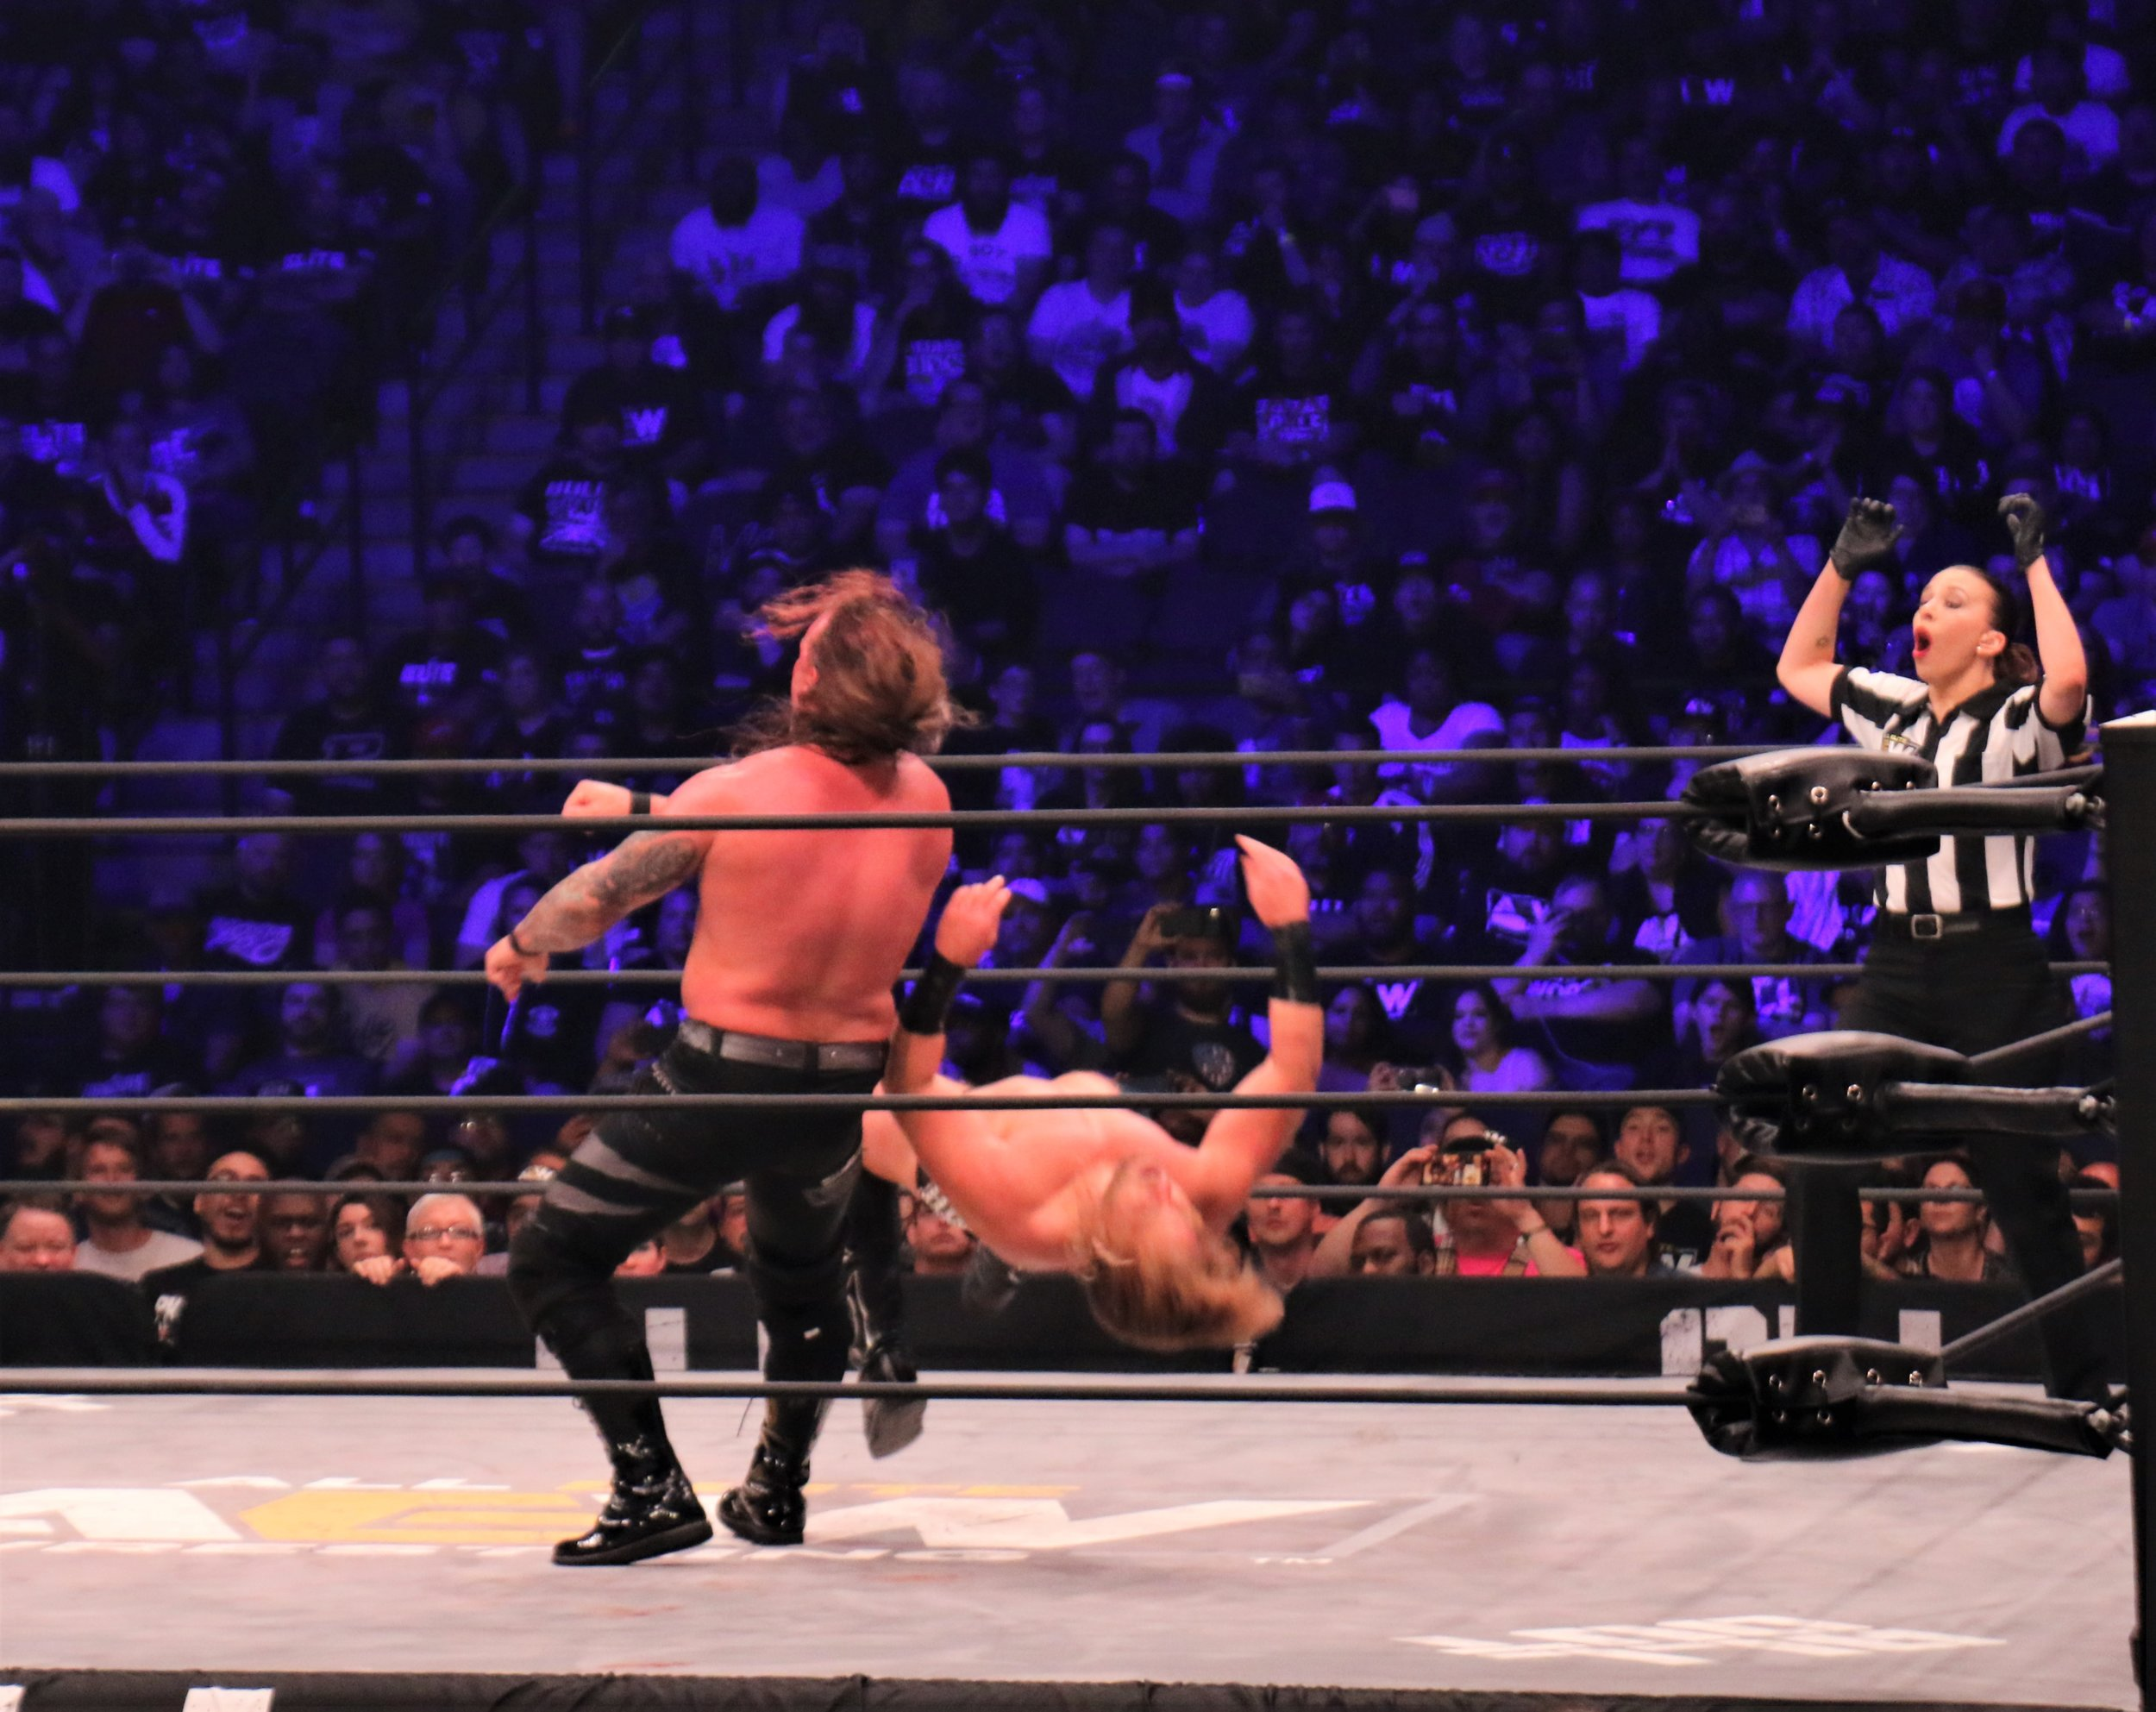 Chris Jericho floors Hangman Page with the Judas Effect, leading to the victory and winning the AEW Championship.